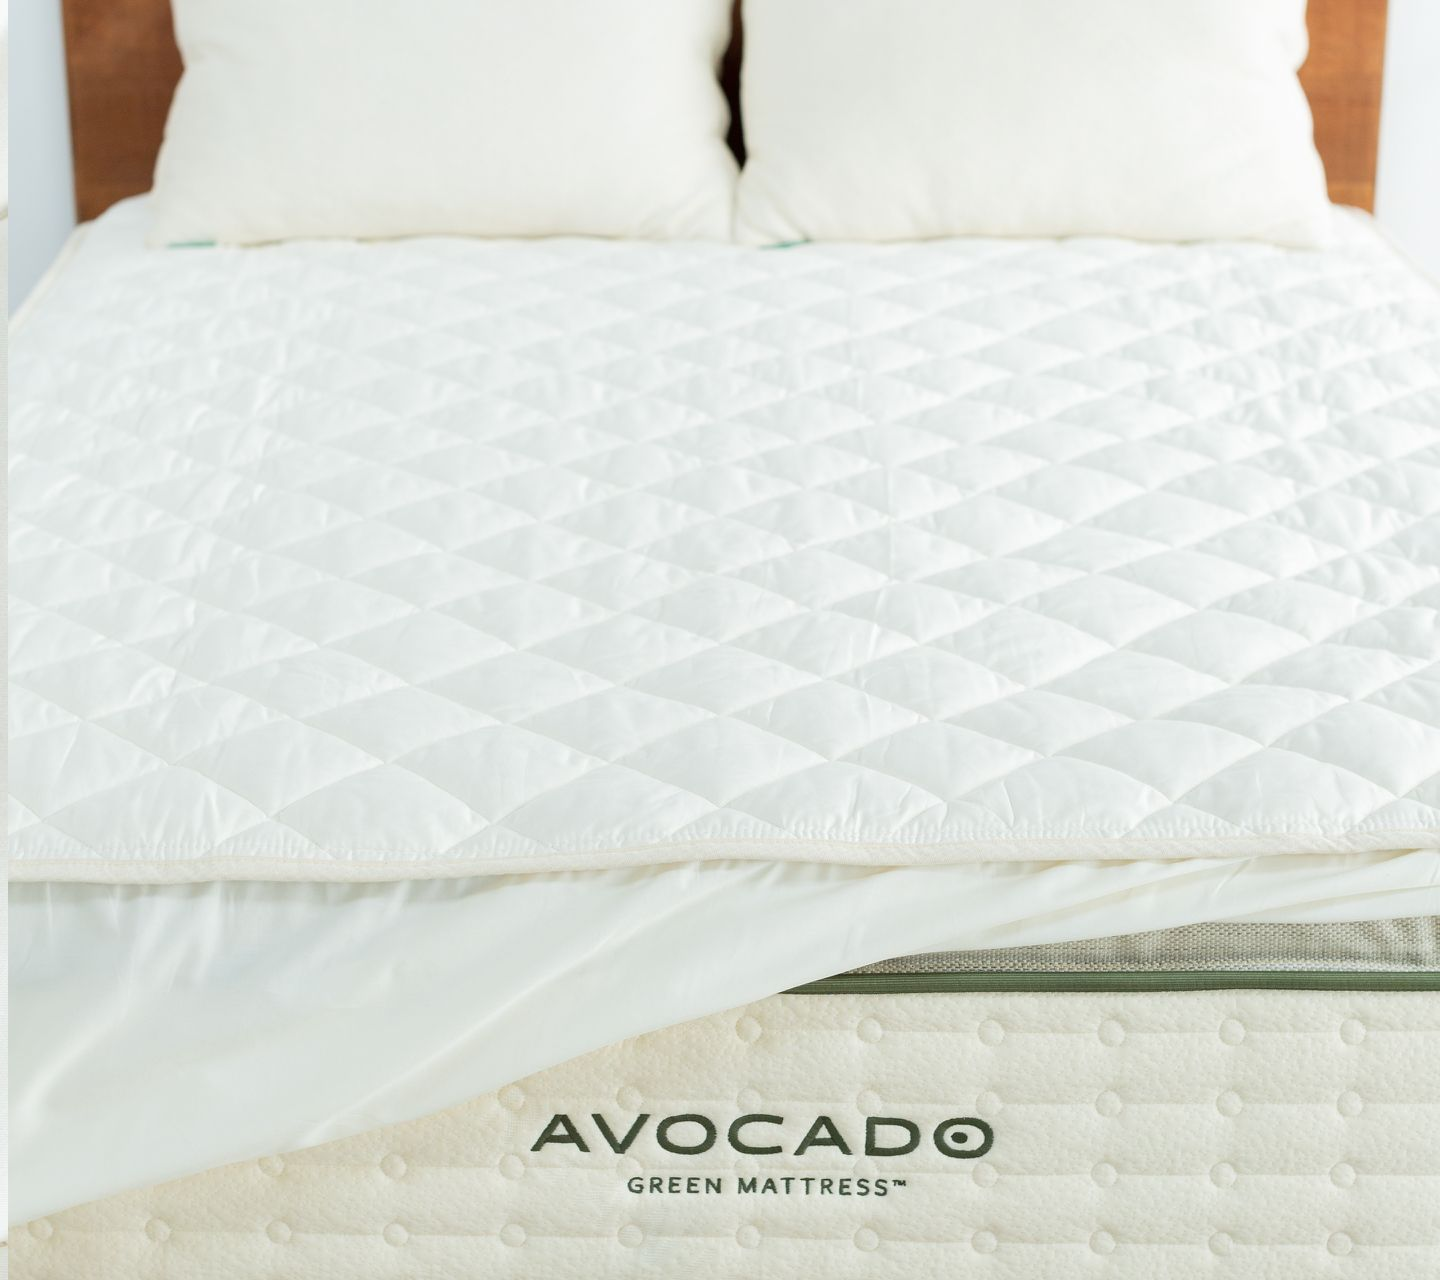 soft breathable natural mattress protector